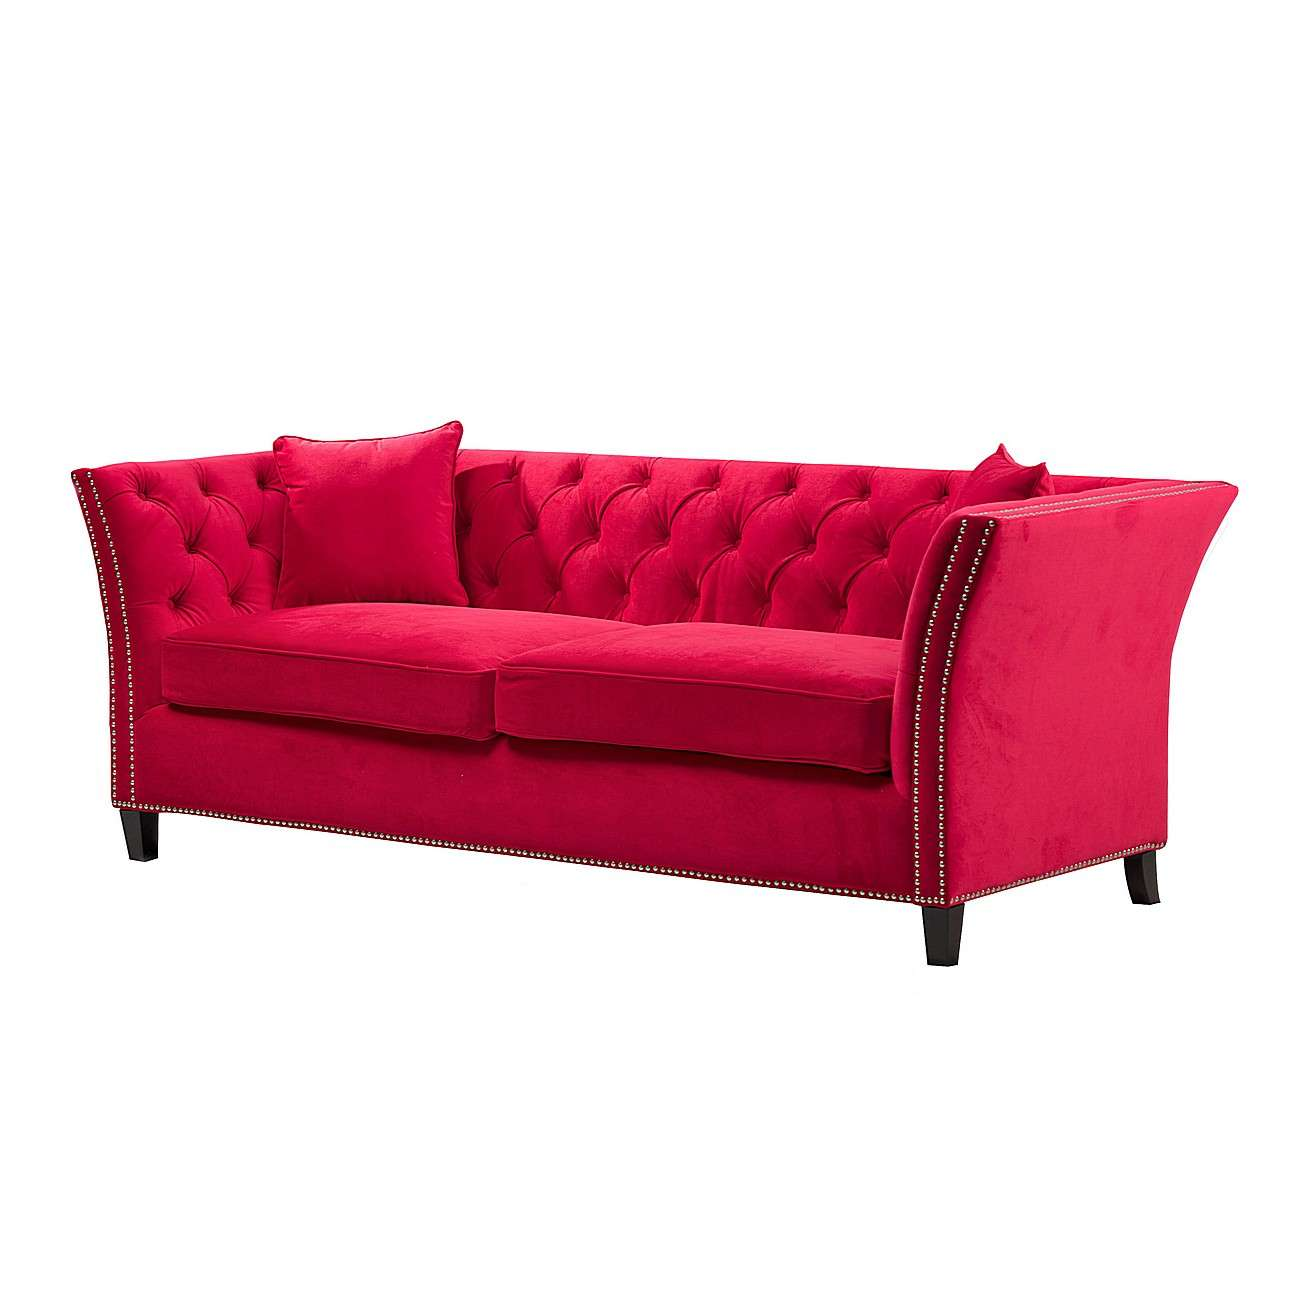 sofa chesterfield modern raspberry red 3 sitzer dekoria. Black Bedroom Furniture Sets. Home Design Ideas